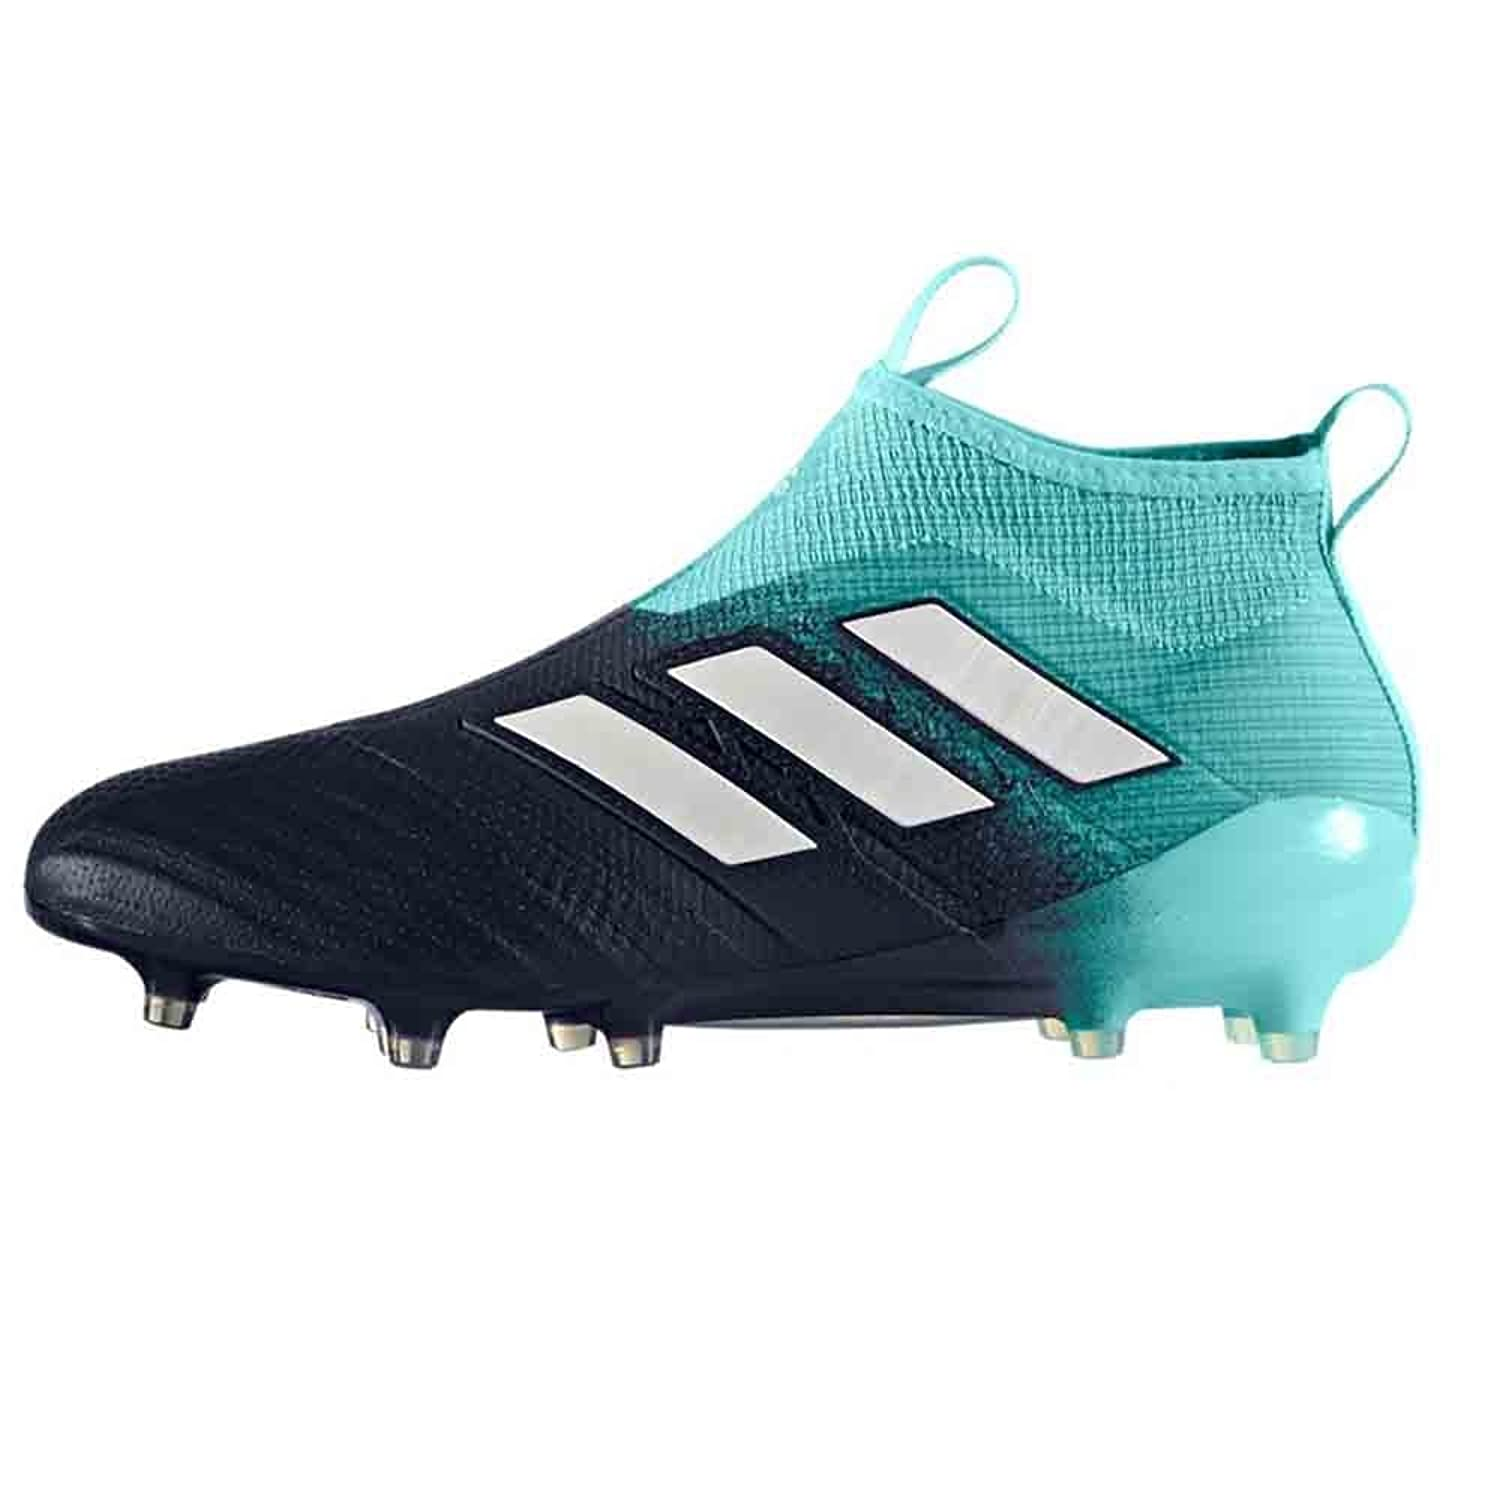 Adidas ACE 17+ PURECONTROL Firm Ground Cleats B0742M4S3D 9 D(M) US